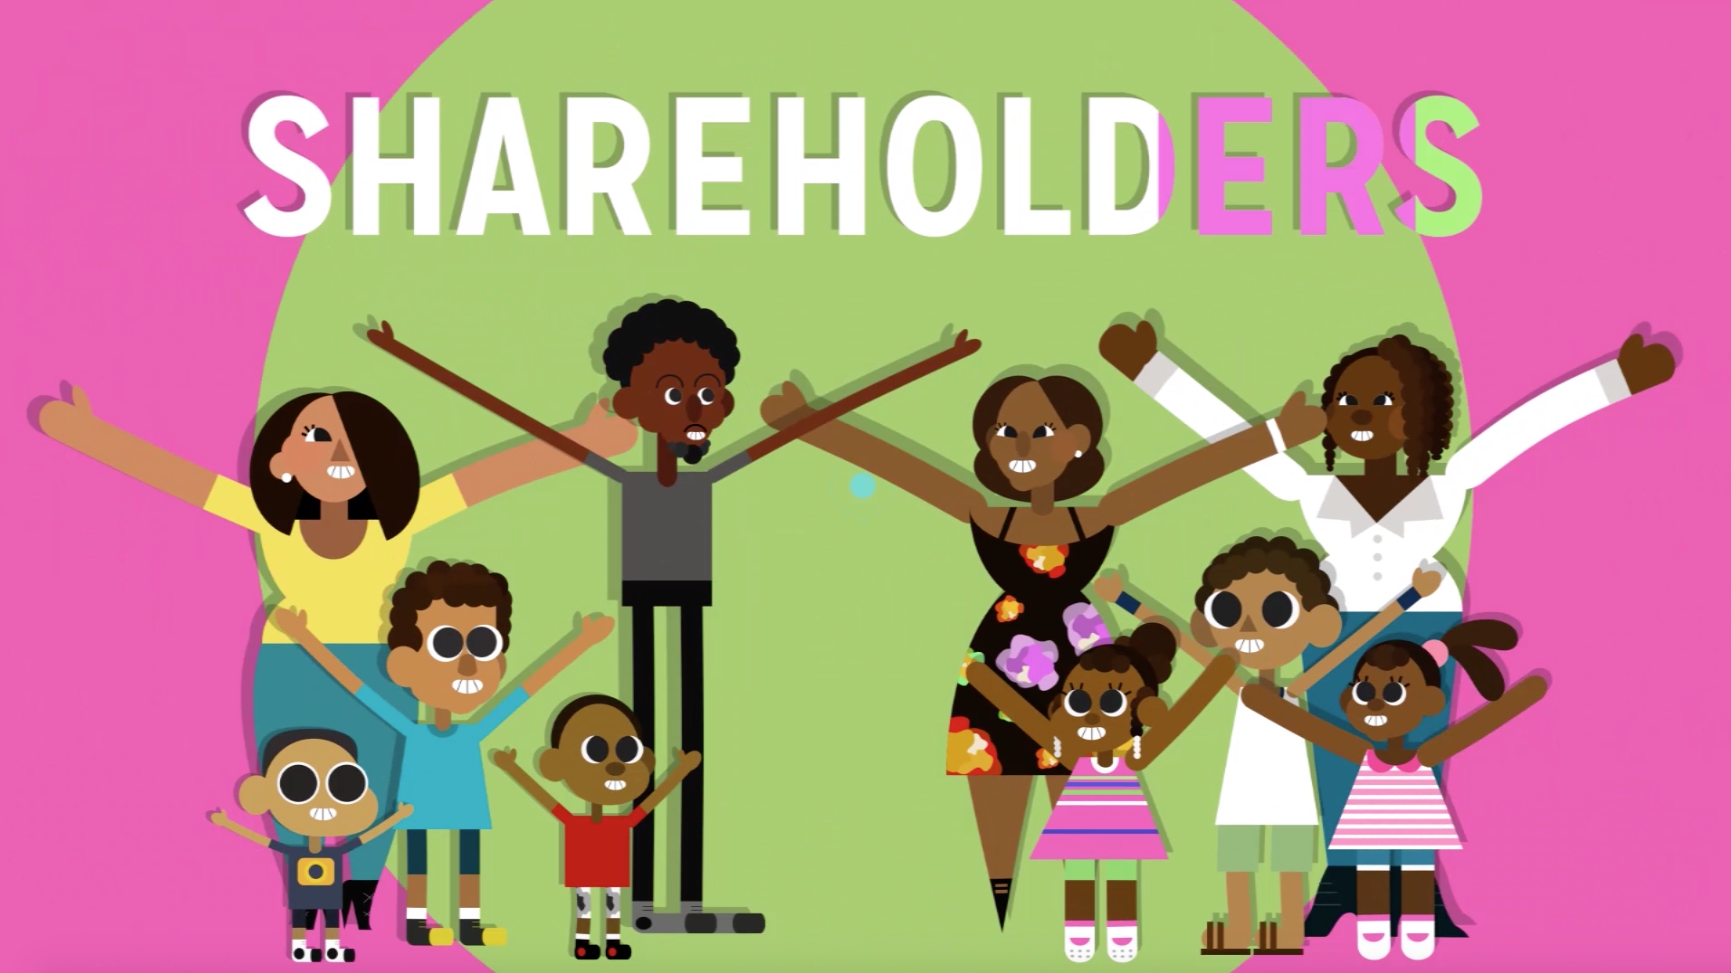 THE-SHAREHOLDERS.png